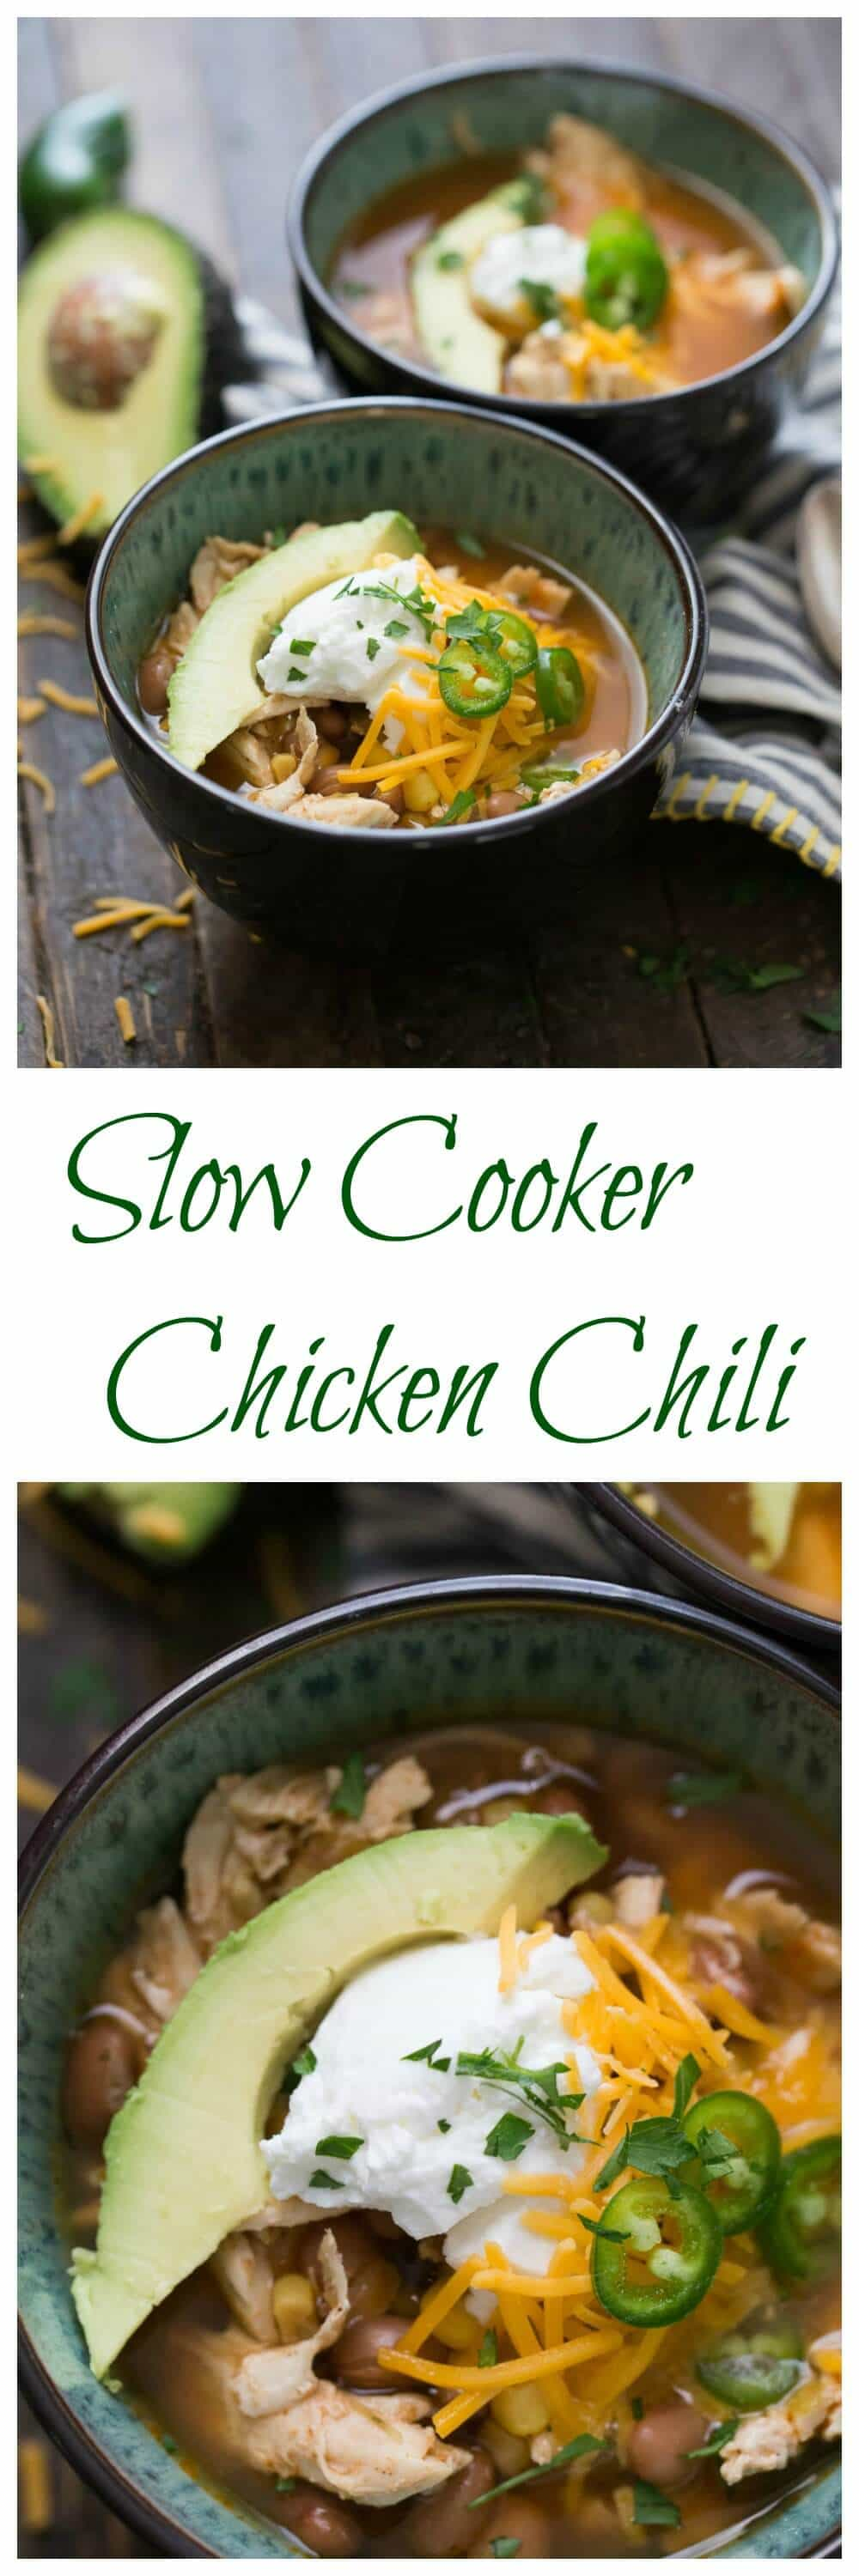 This slow cooker chicken chili is so easy! Let the slow cooker do all the work and you enjoy a hearty and satisfying recipe!